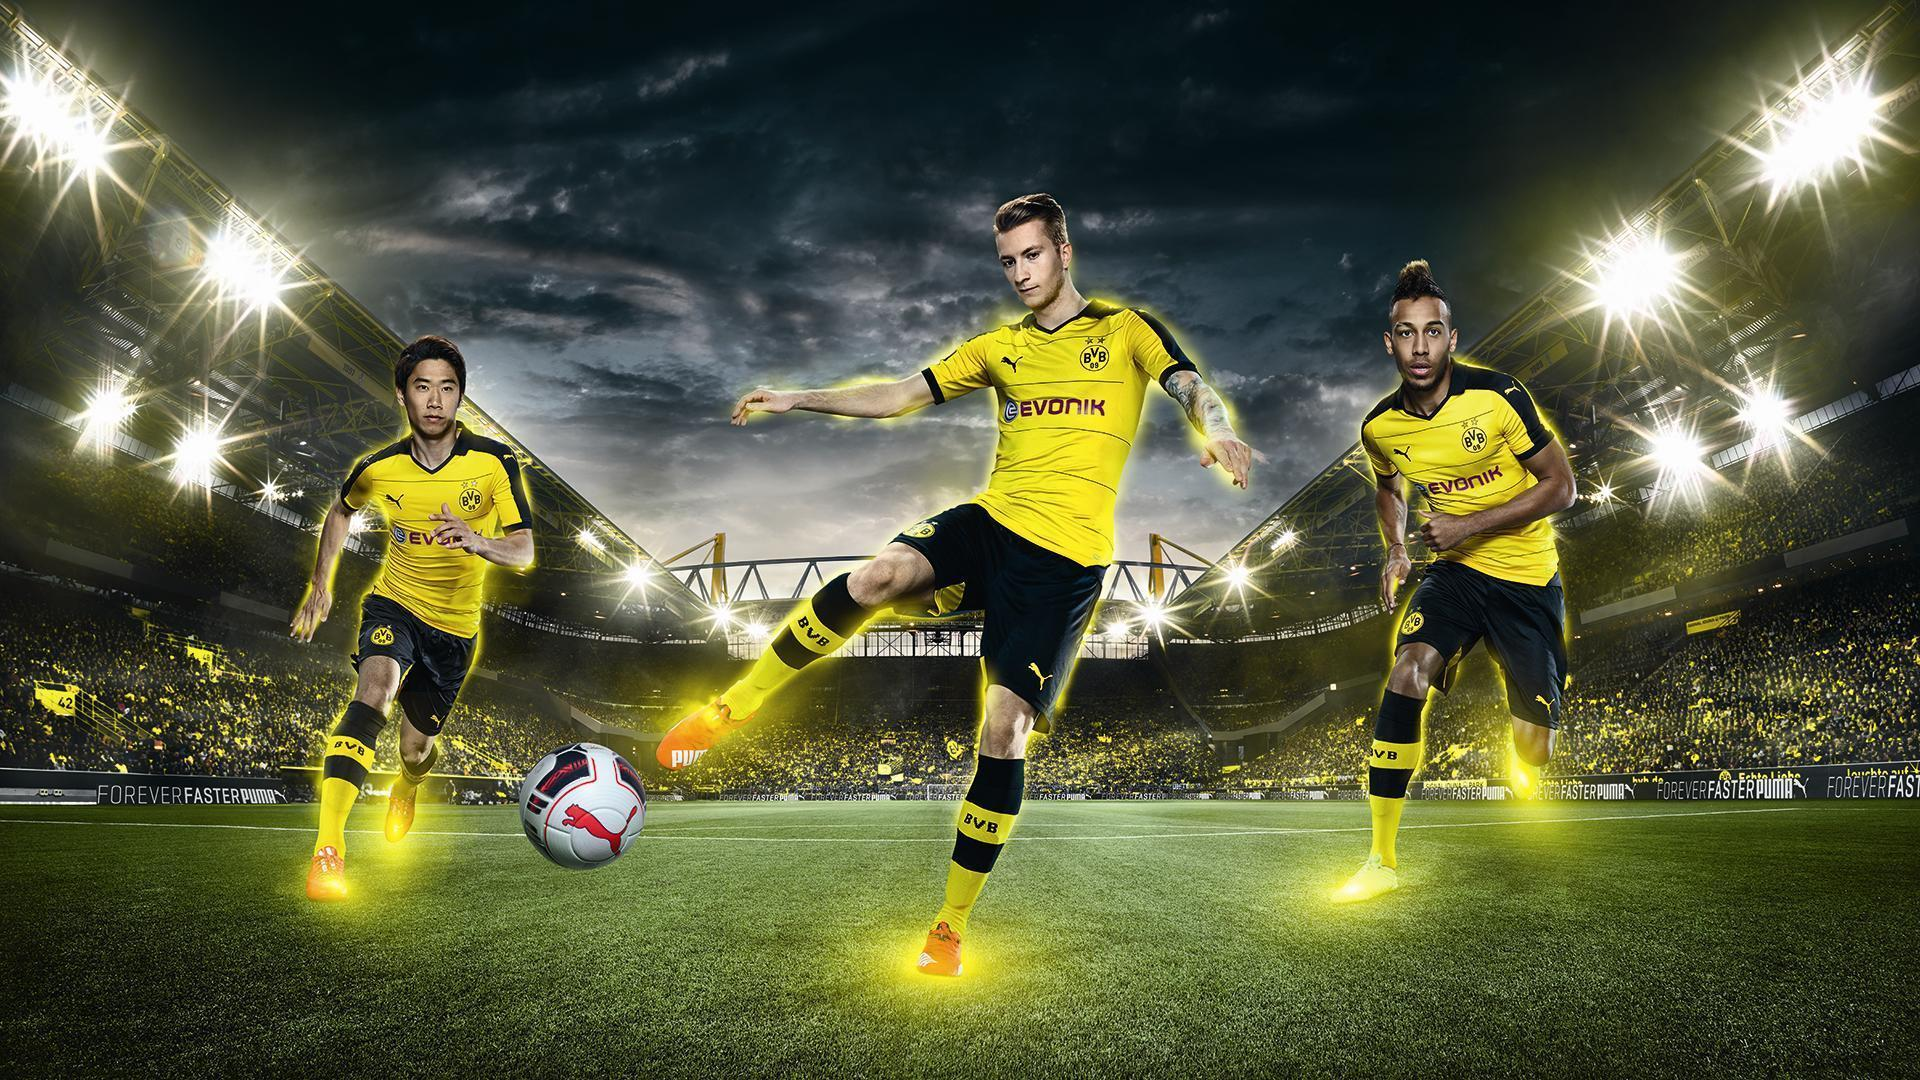 puma soccer wallpapers images - photo #25